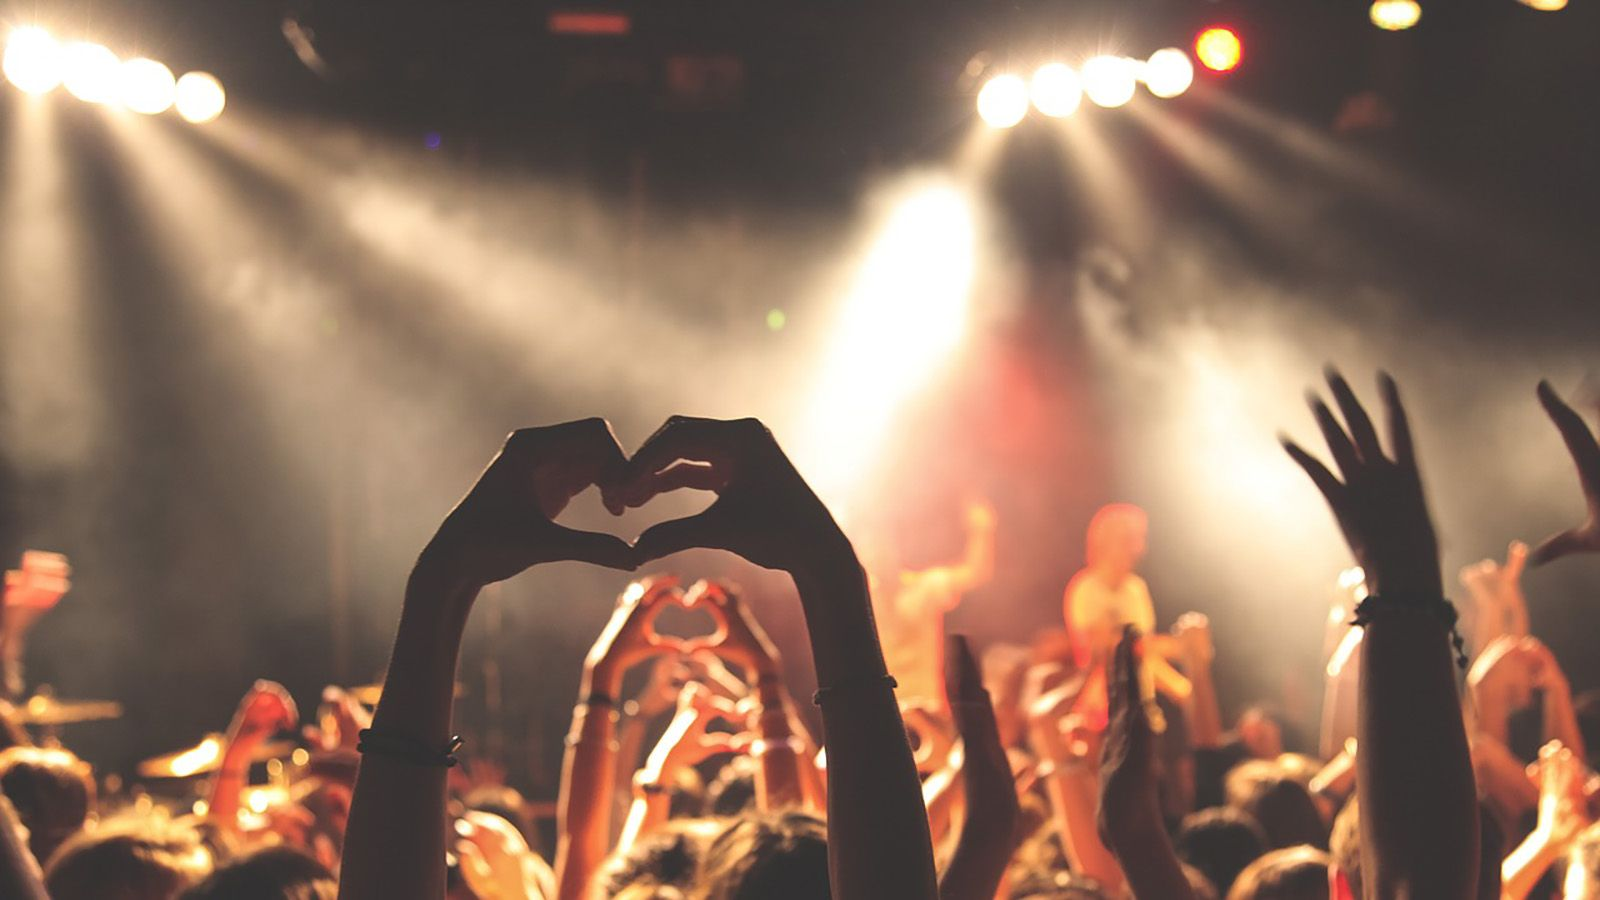 Overhead photograph of a music performance with one crowd member forming their hands into the shape of a heart banner image